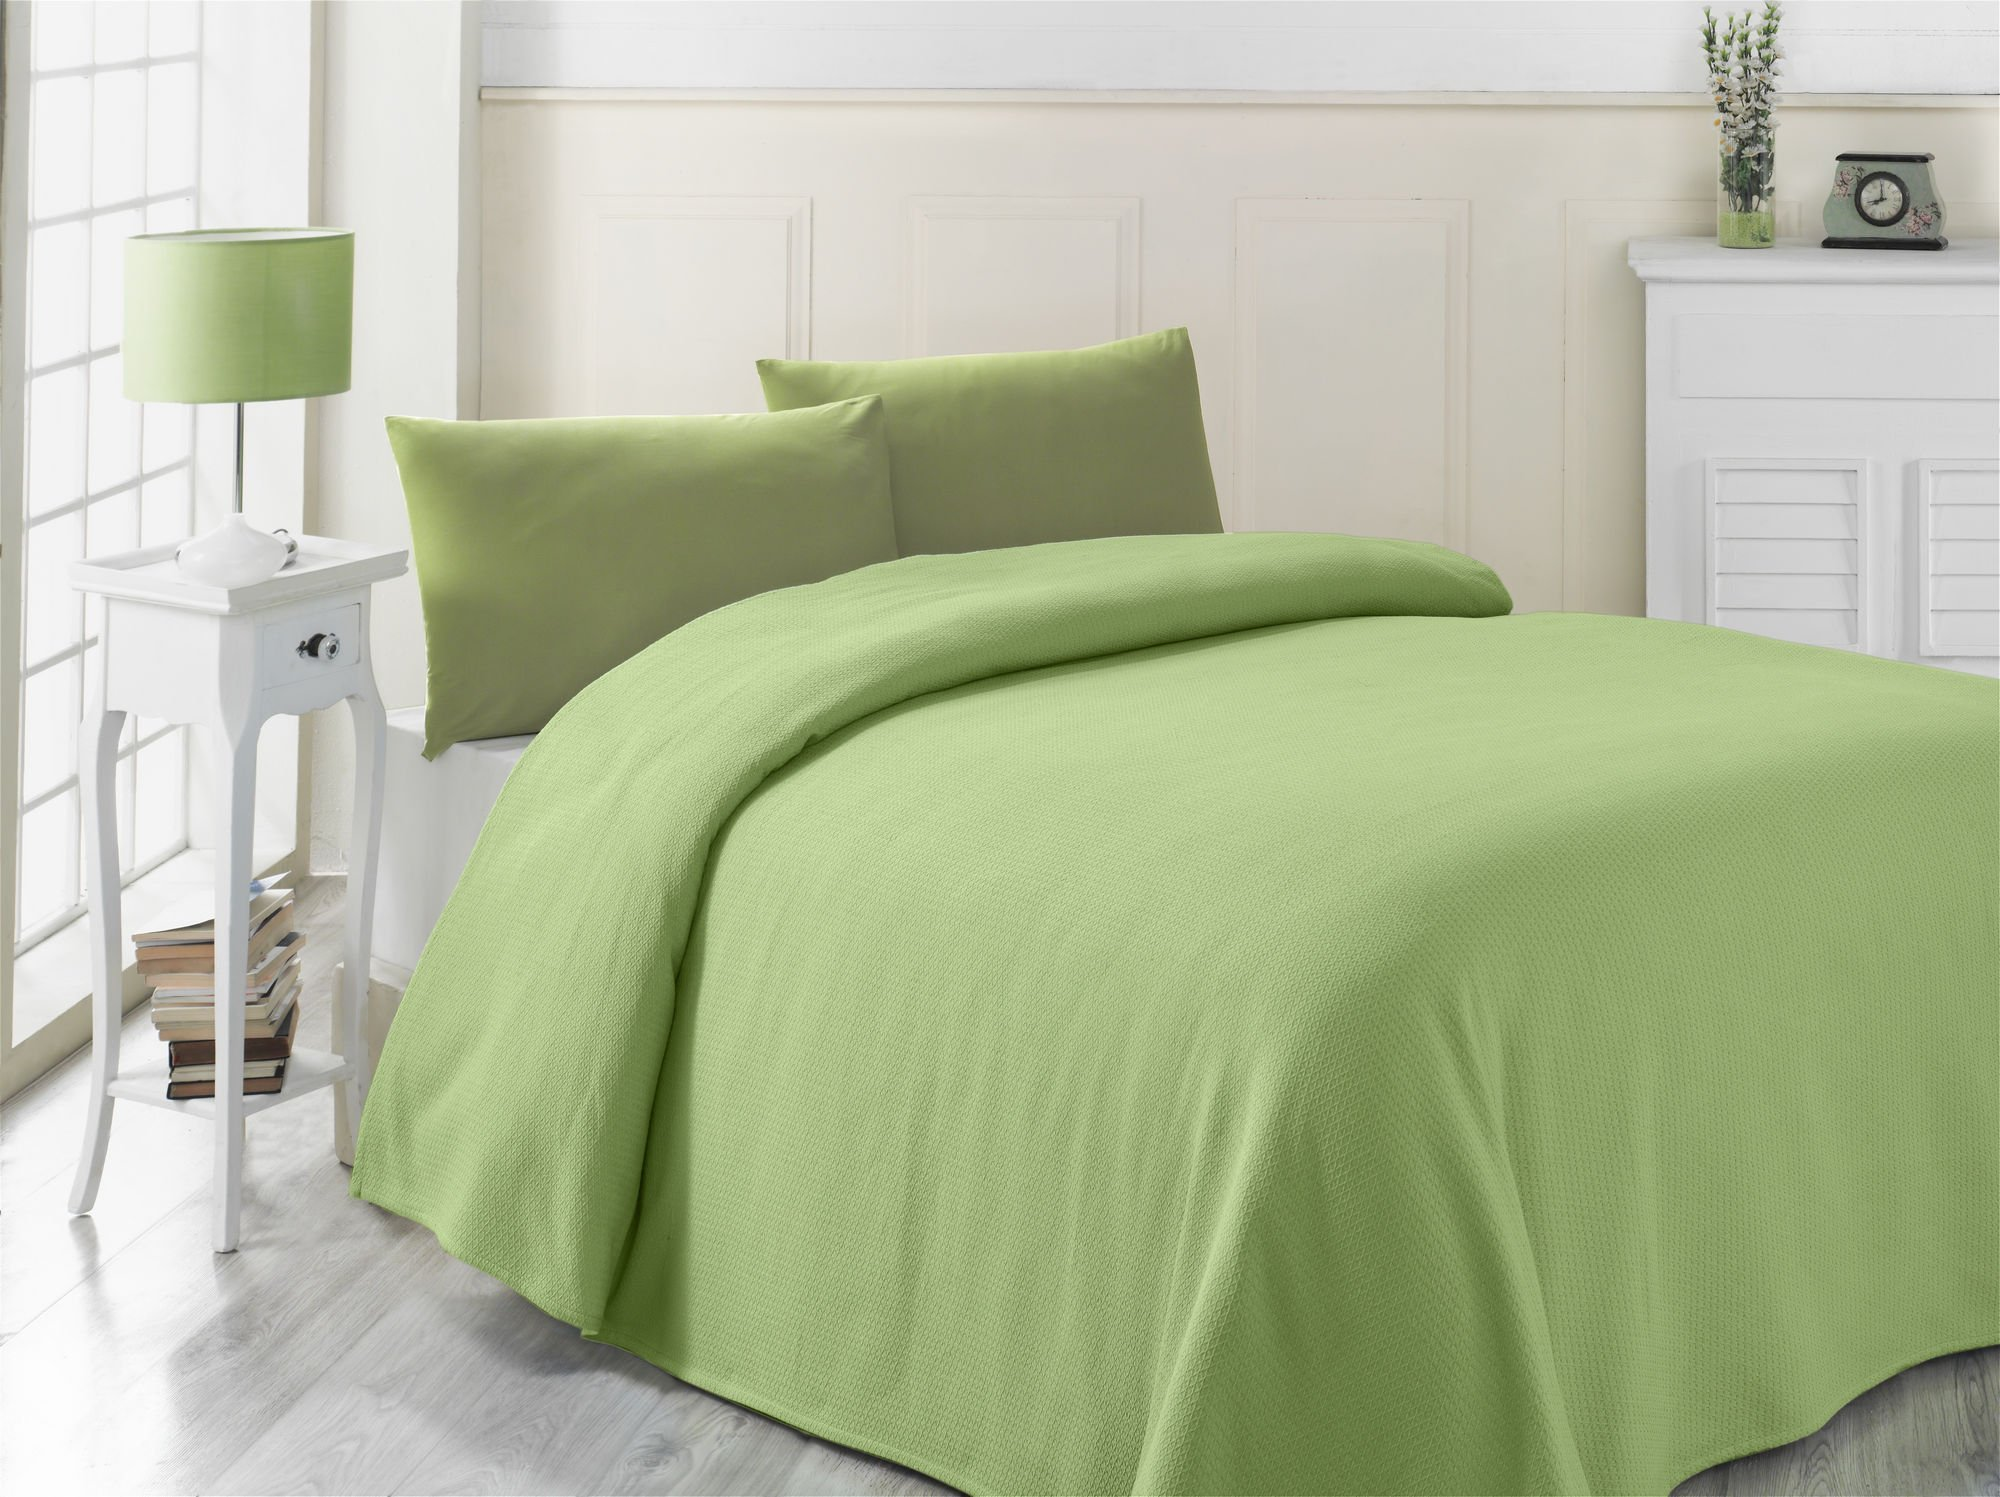 LaModaHome Colors Coverlet, 100% Cotton - Plain Green, One Colored, Straight, Formless - Size (63'' x 90.6'') for Single Bed